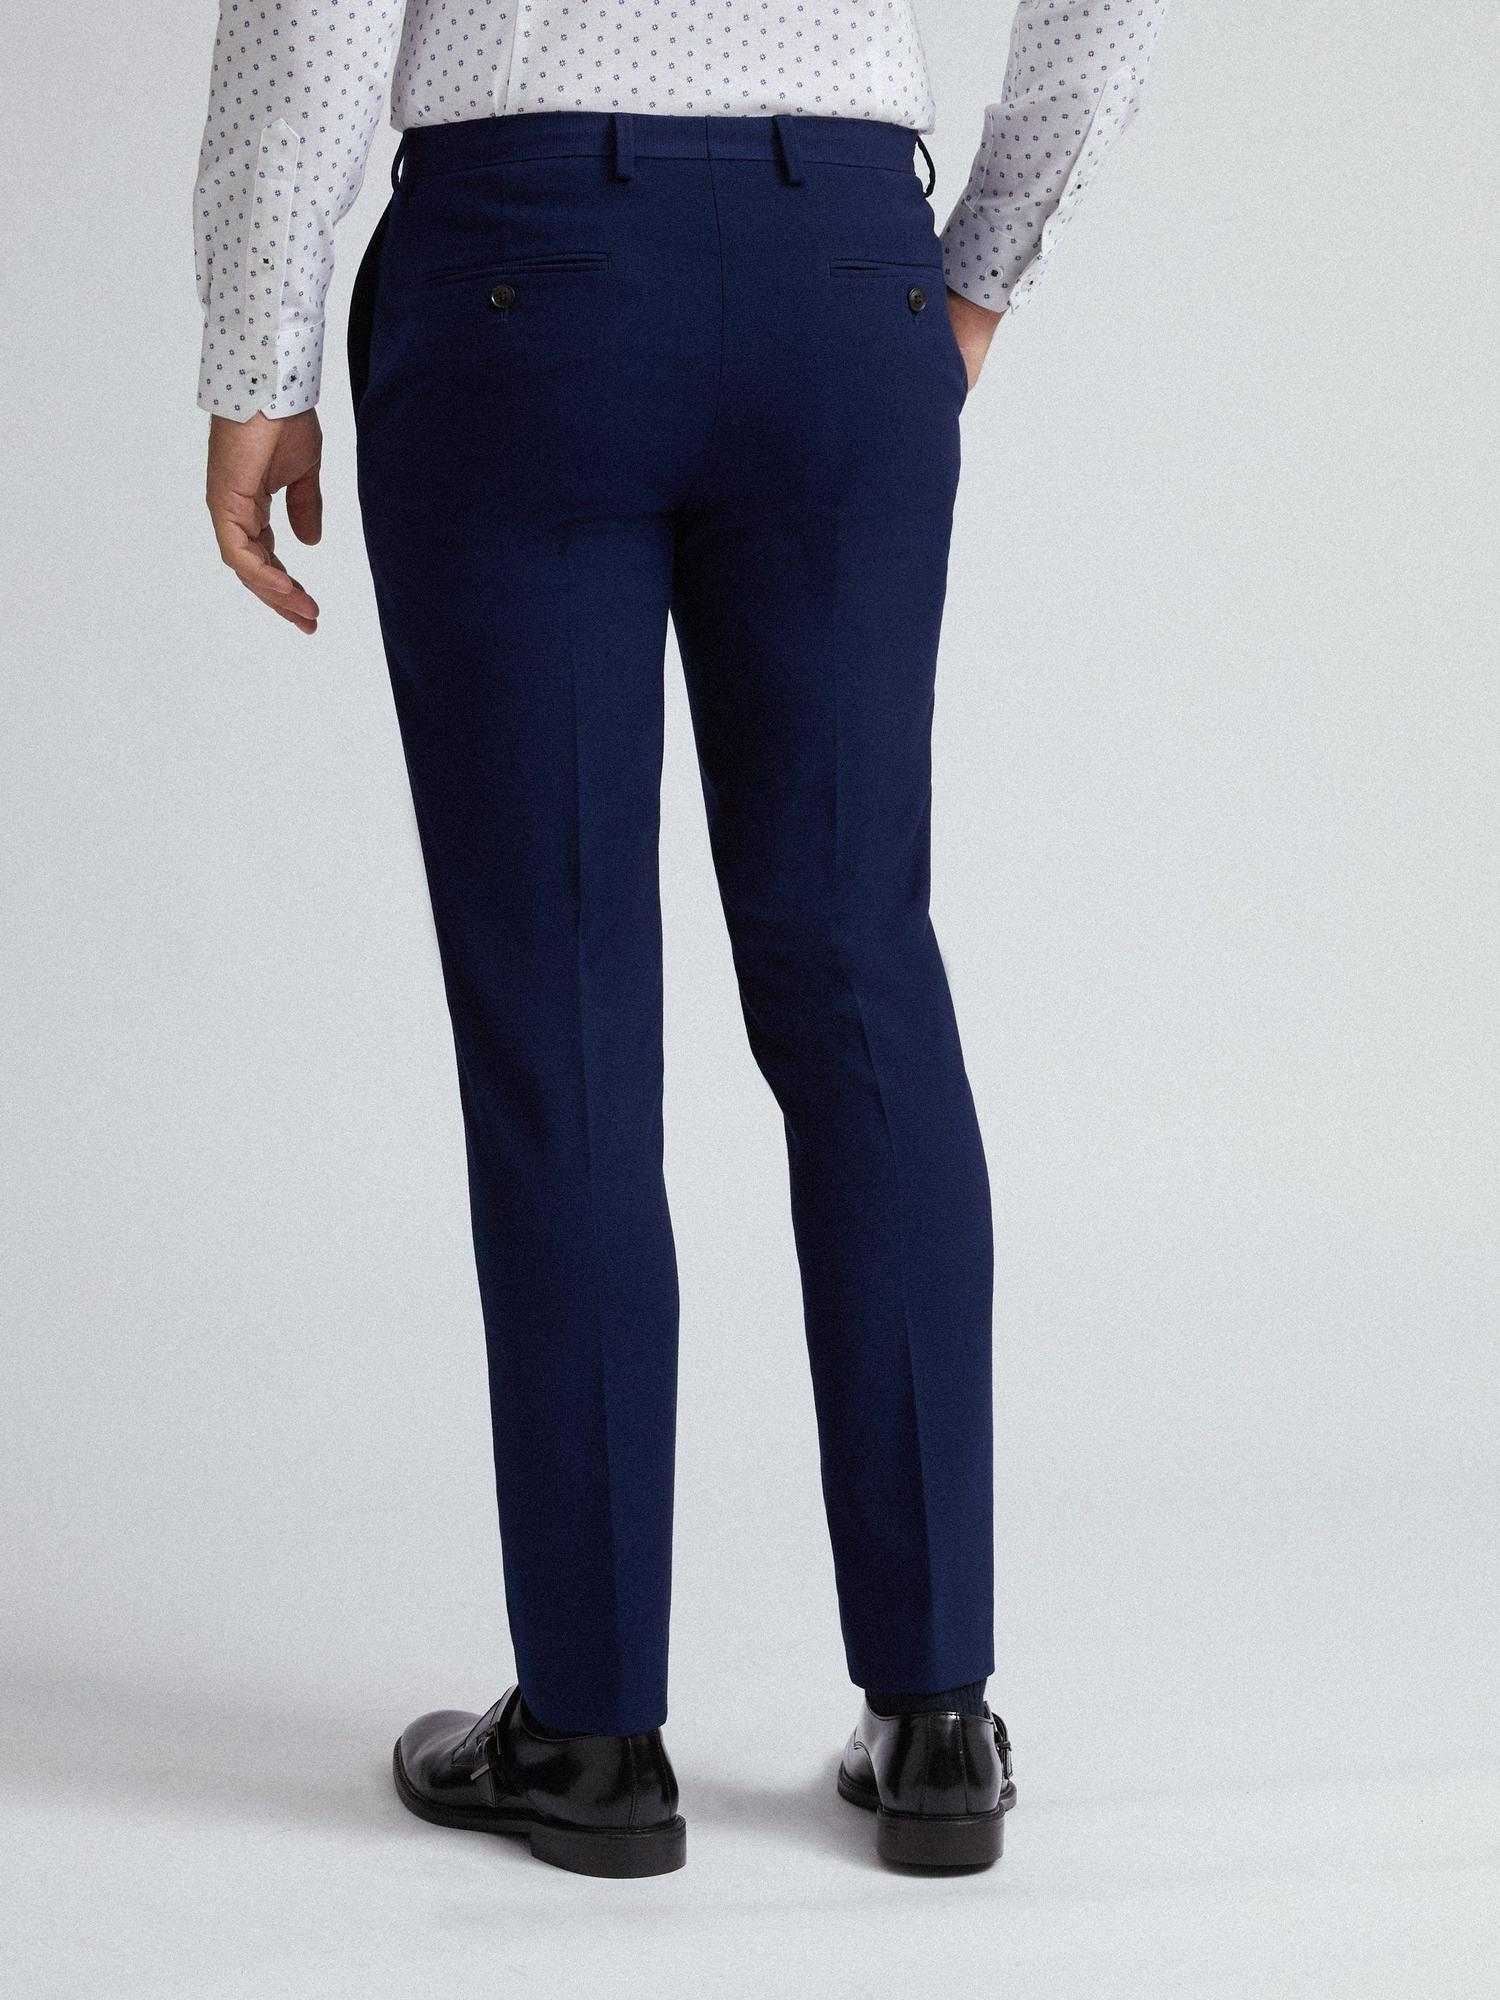 148 Blue Texture Skinny Fit Suit Trousers image number 3